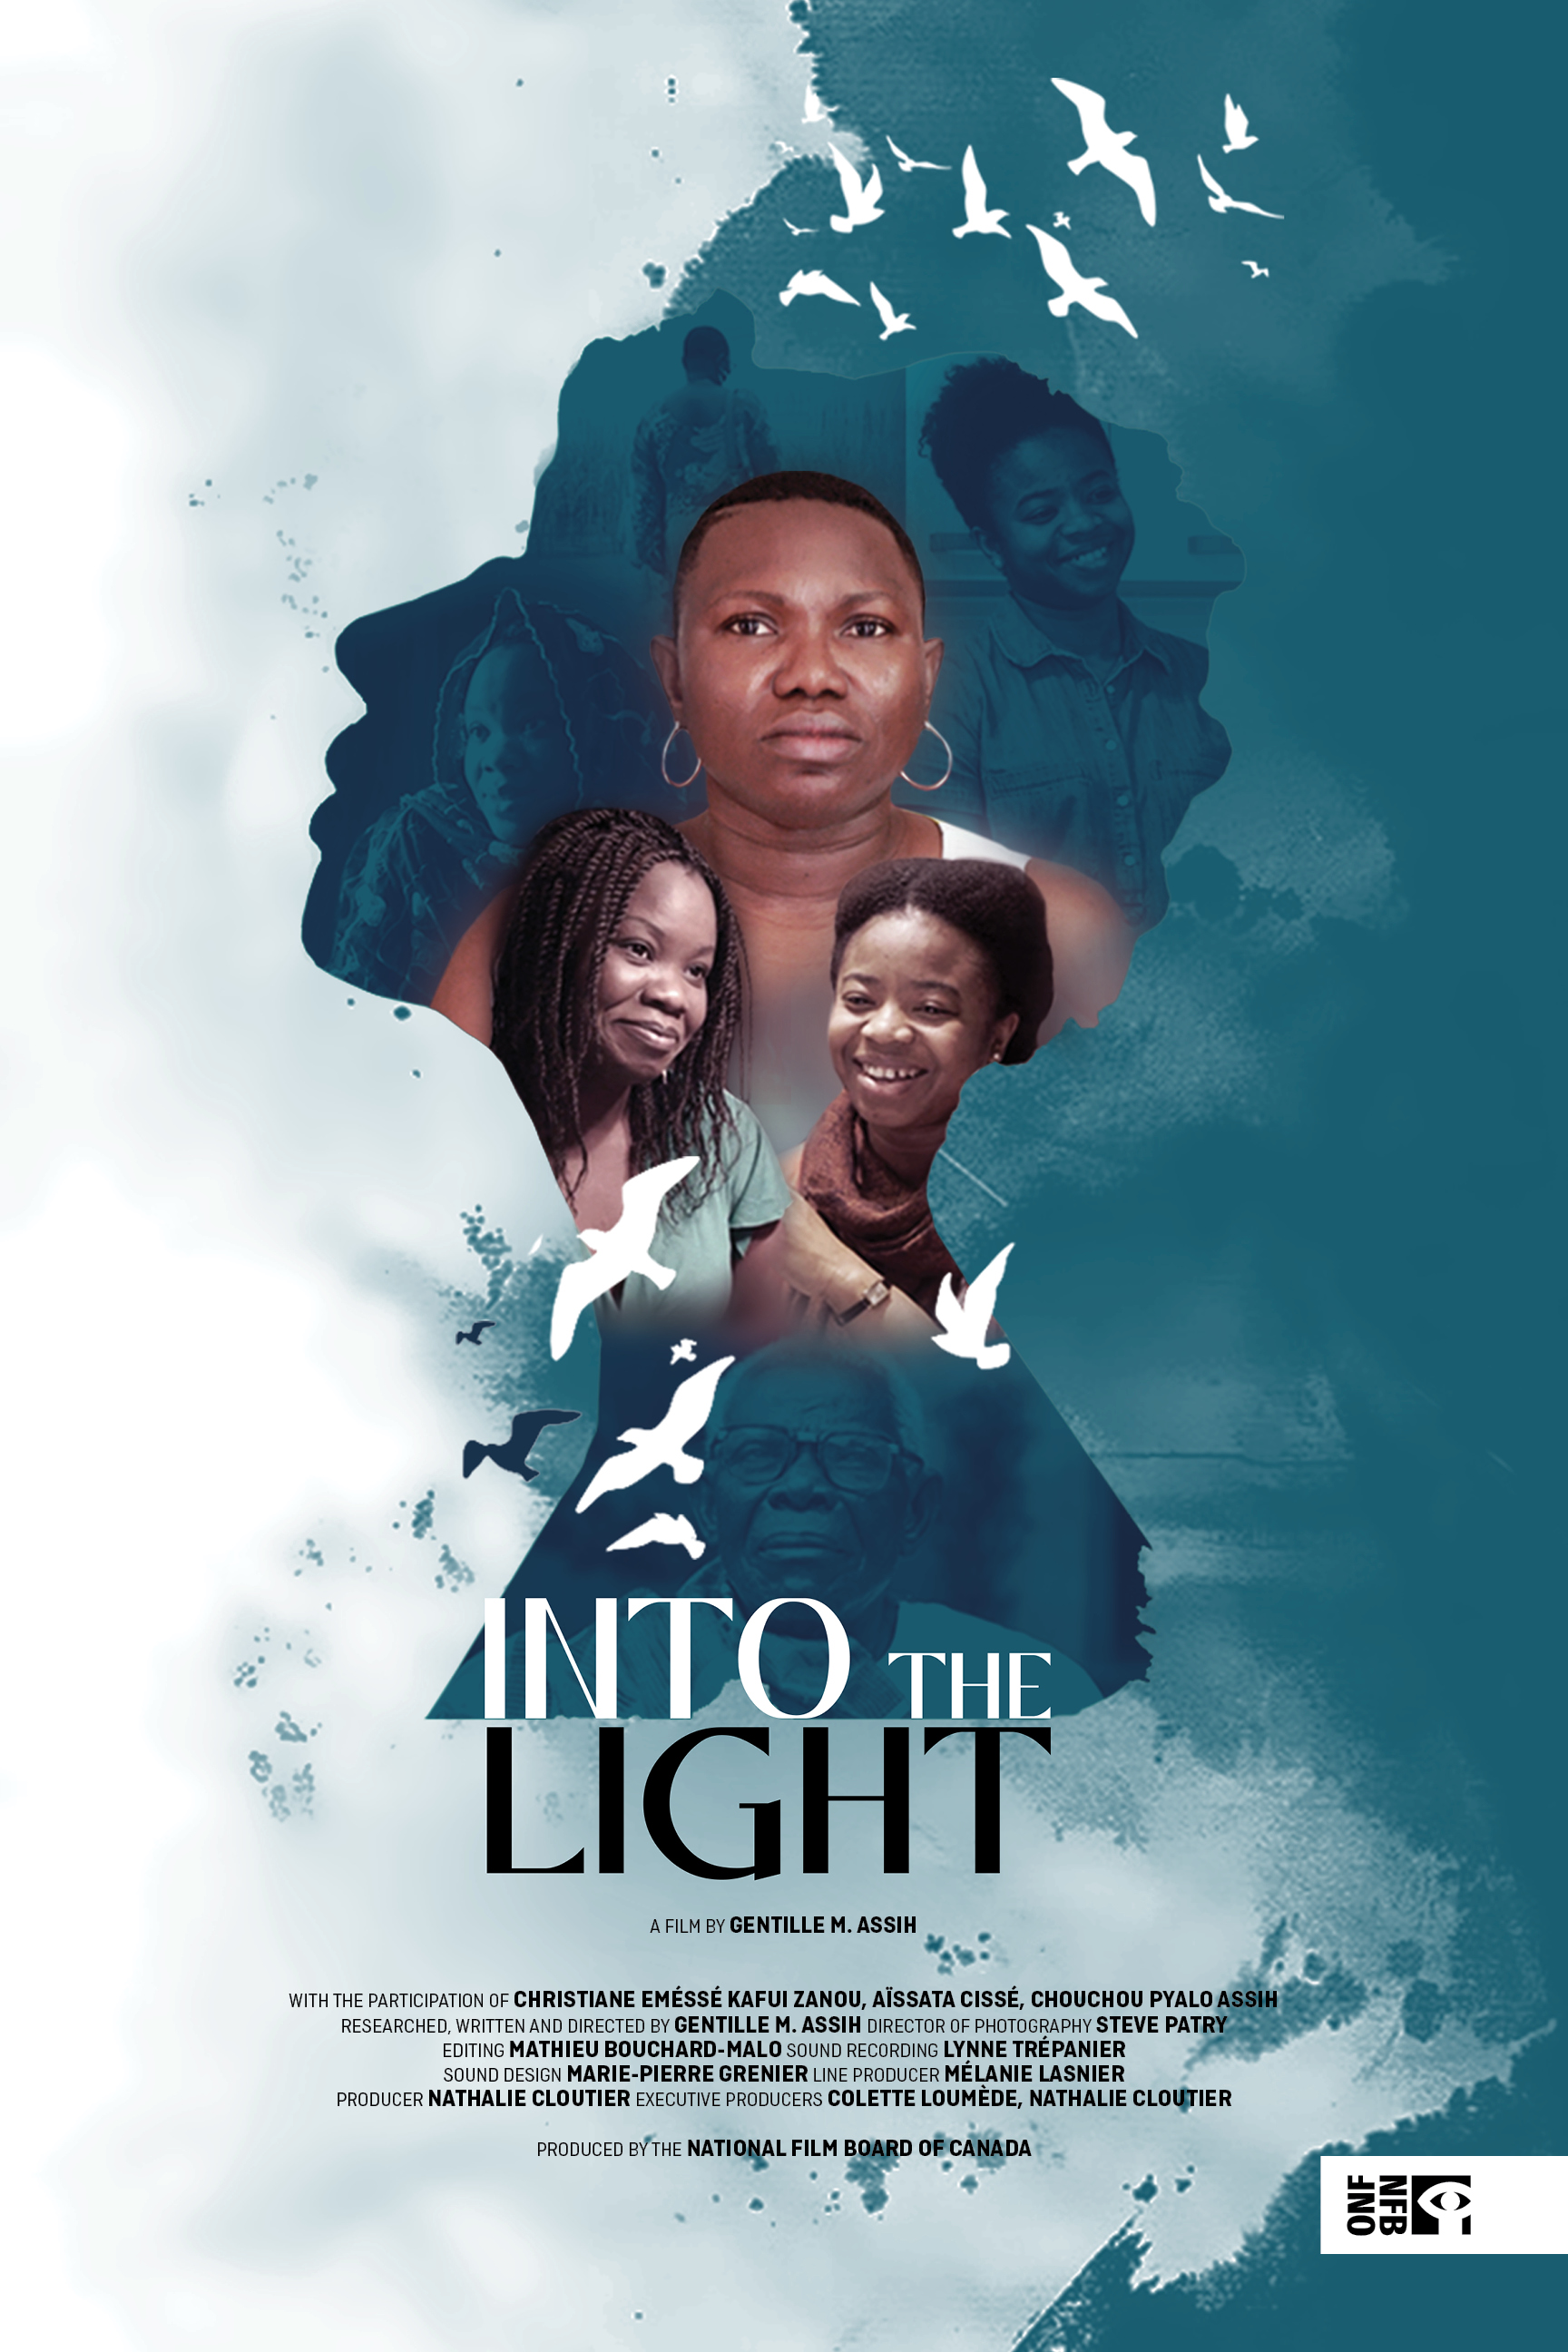 Into the Light (Gentille M. Assih, ONF). Inspiring women of African descent regain power over their lives after experiencing domestic violence